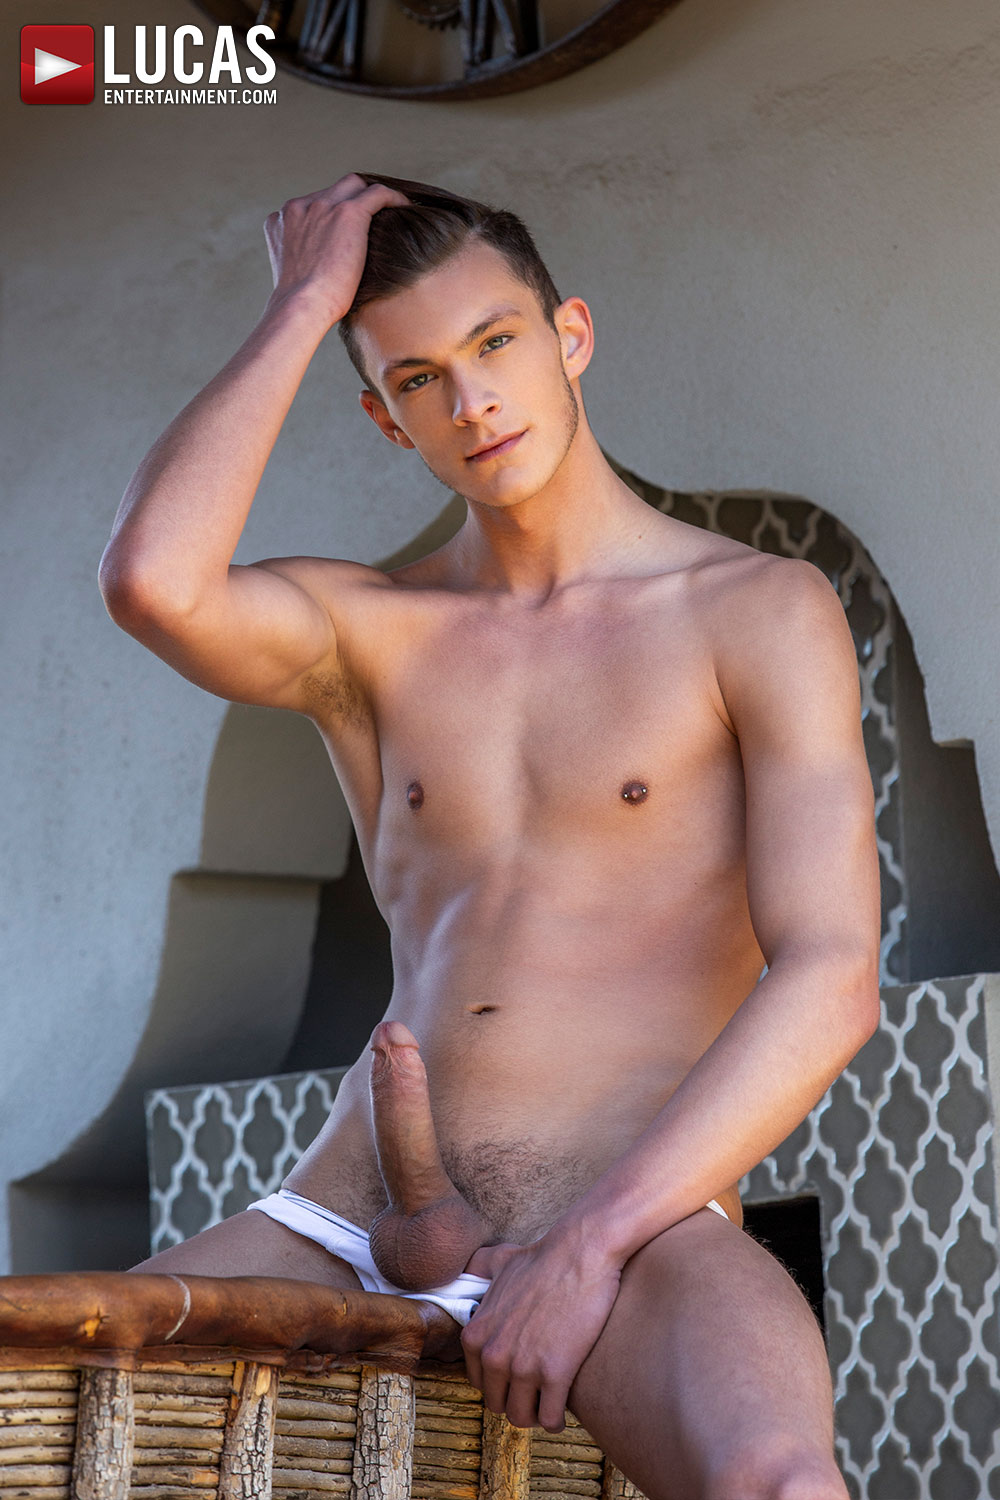 Braxton Boyd Braxton is a beautiful newcomer to the gay porn industry whose chiseled good looks are